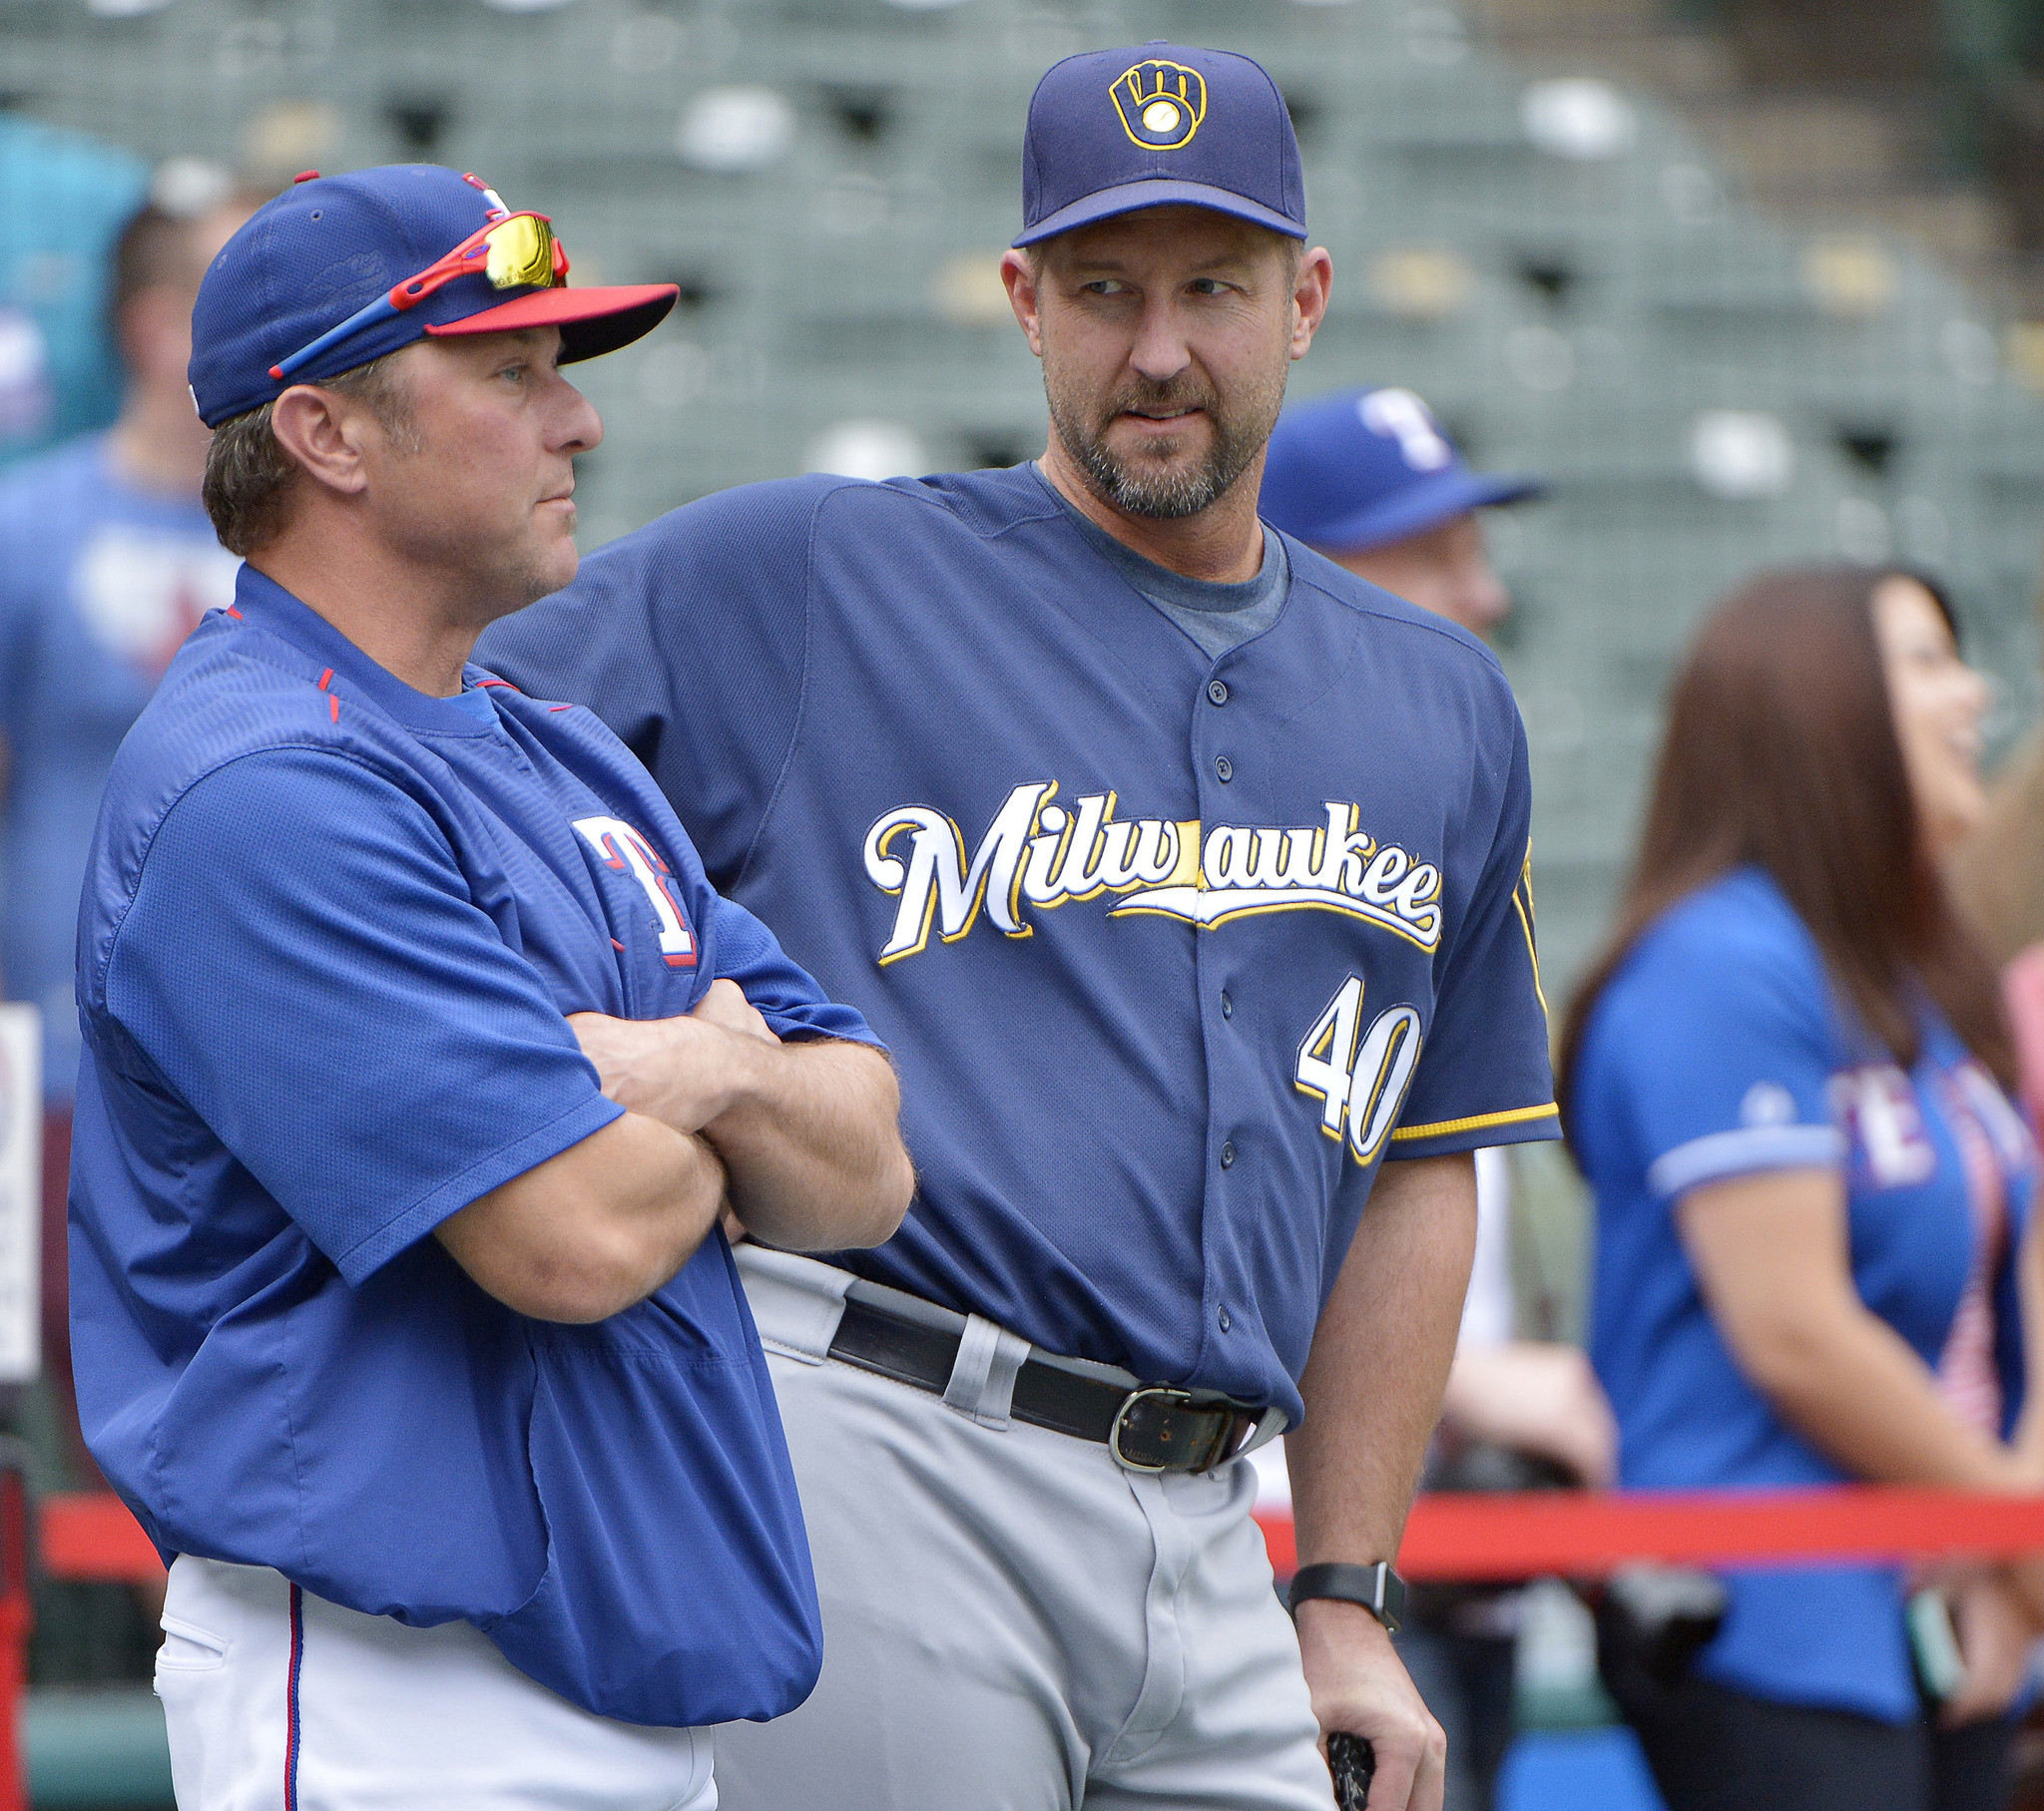 'He's a problem-solver': Tommy Hottovy's analytics background, communication skills lead to his promotion to Cubs pitching coach